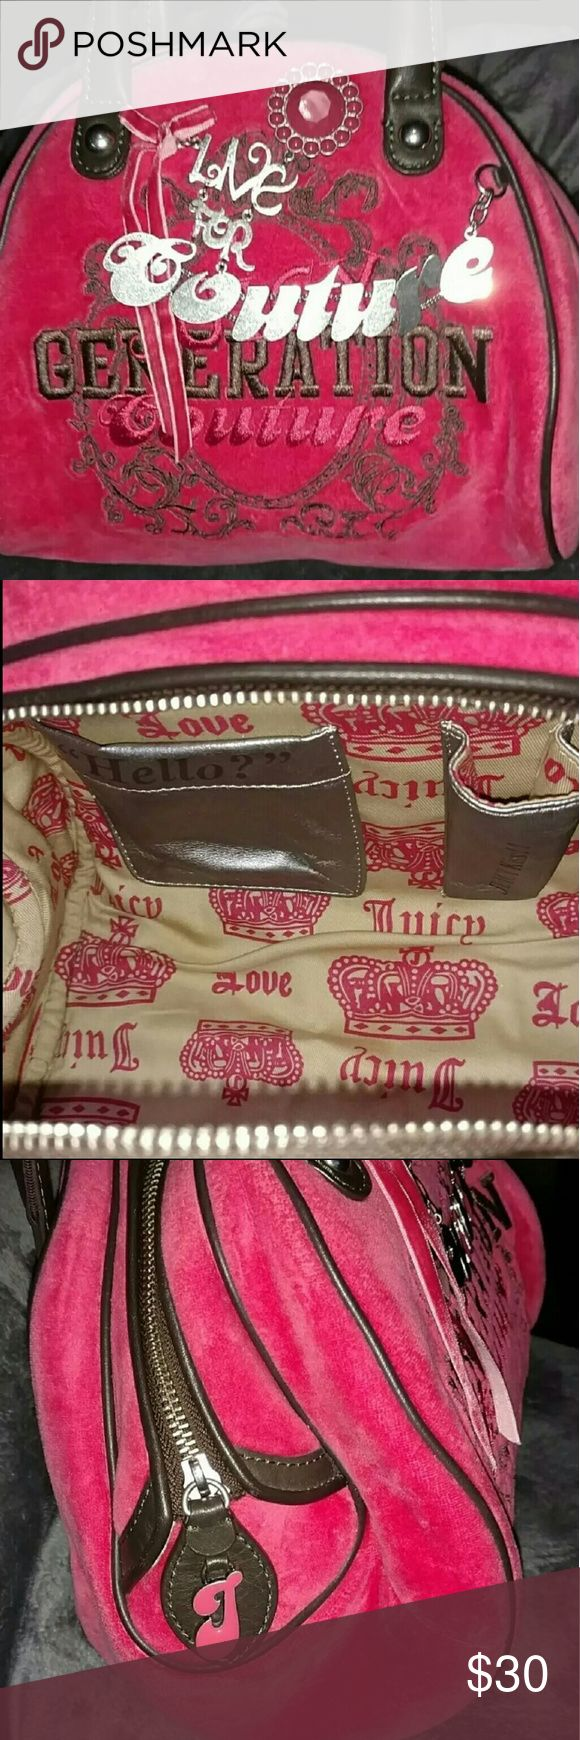 Mint condition Juicy Couture handbag. Sale now Sale!! Pink velour with black. Absolutely Gorgeous !! Authentic original!  Price is firm unless bundled. Juicy Couture Accessories